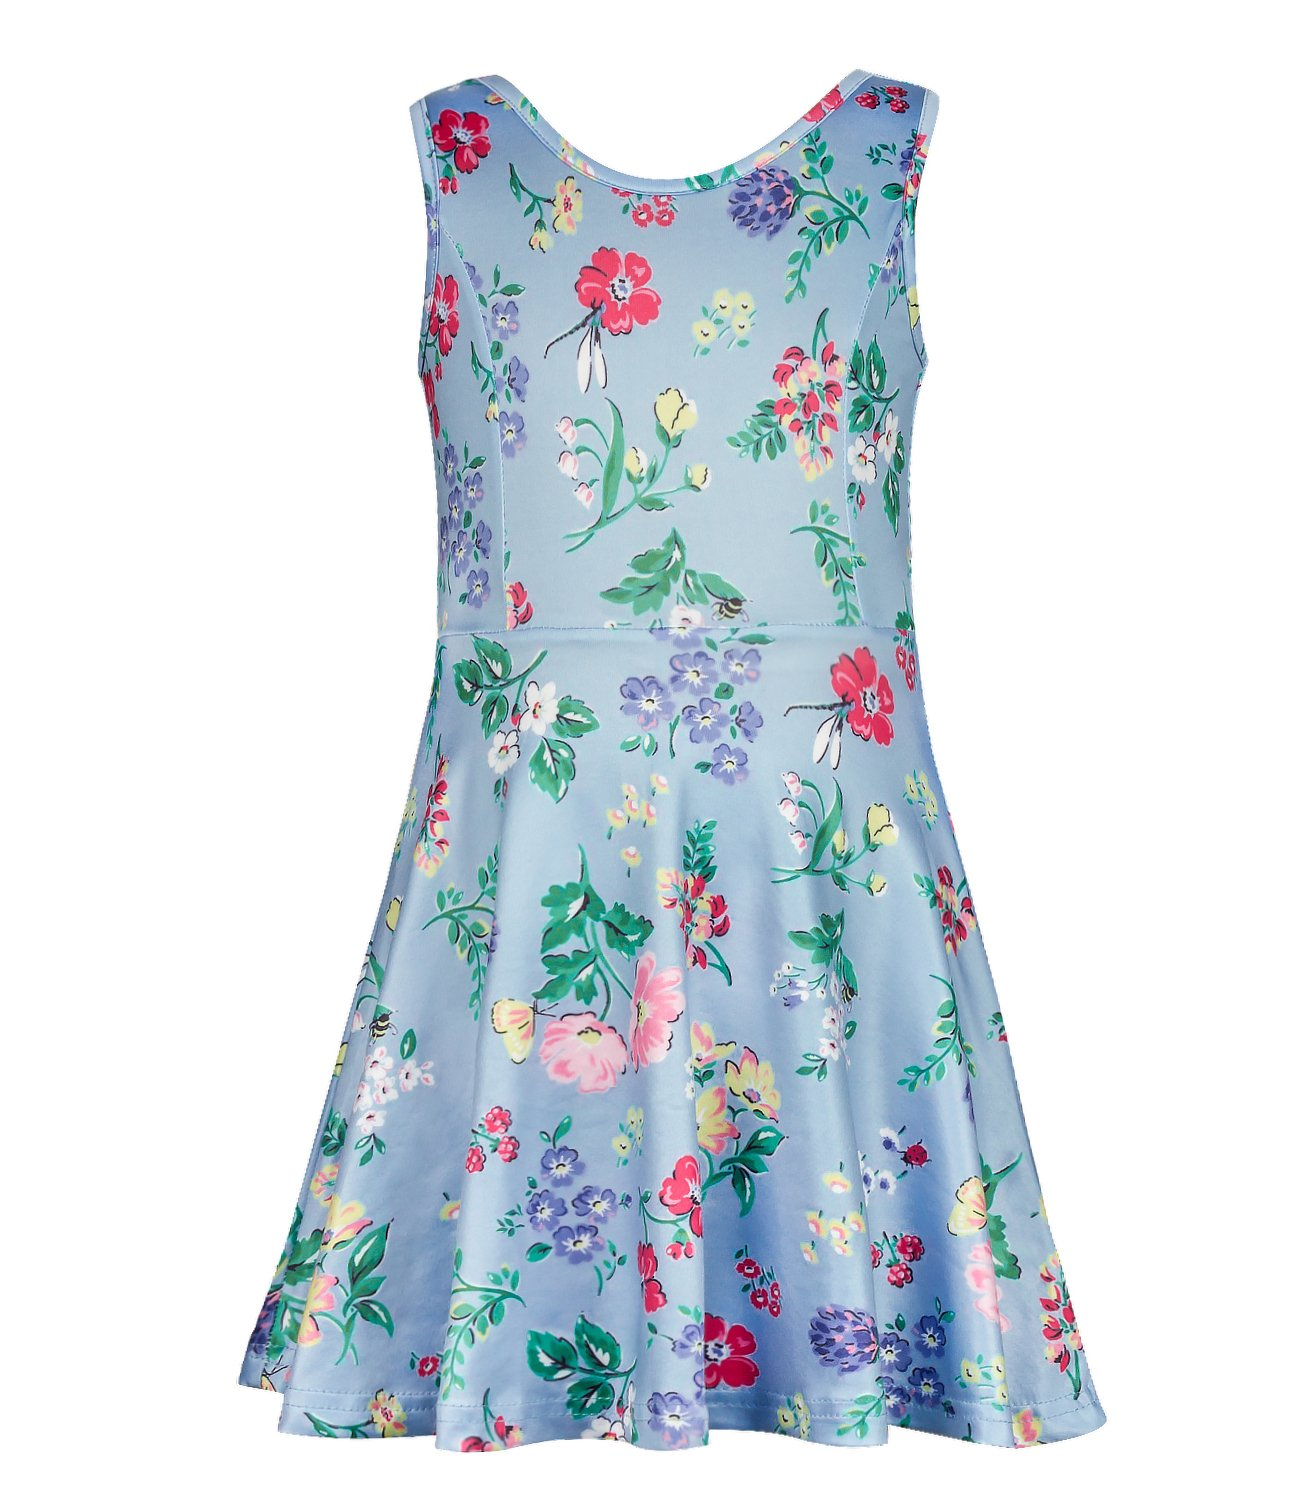 PHOEBE CAT Girls Sleeveless Soft Floral Summer Casual Dress for 6 Years